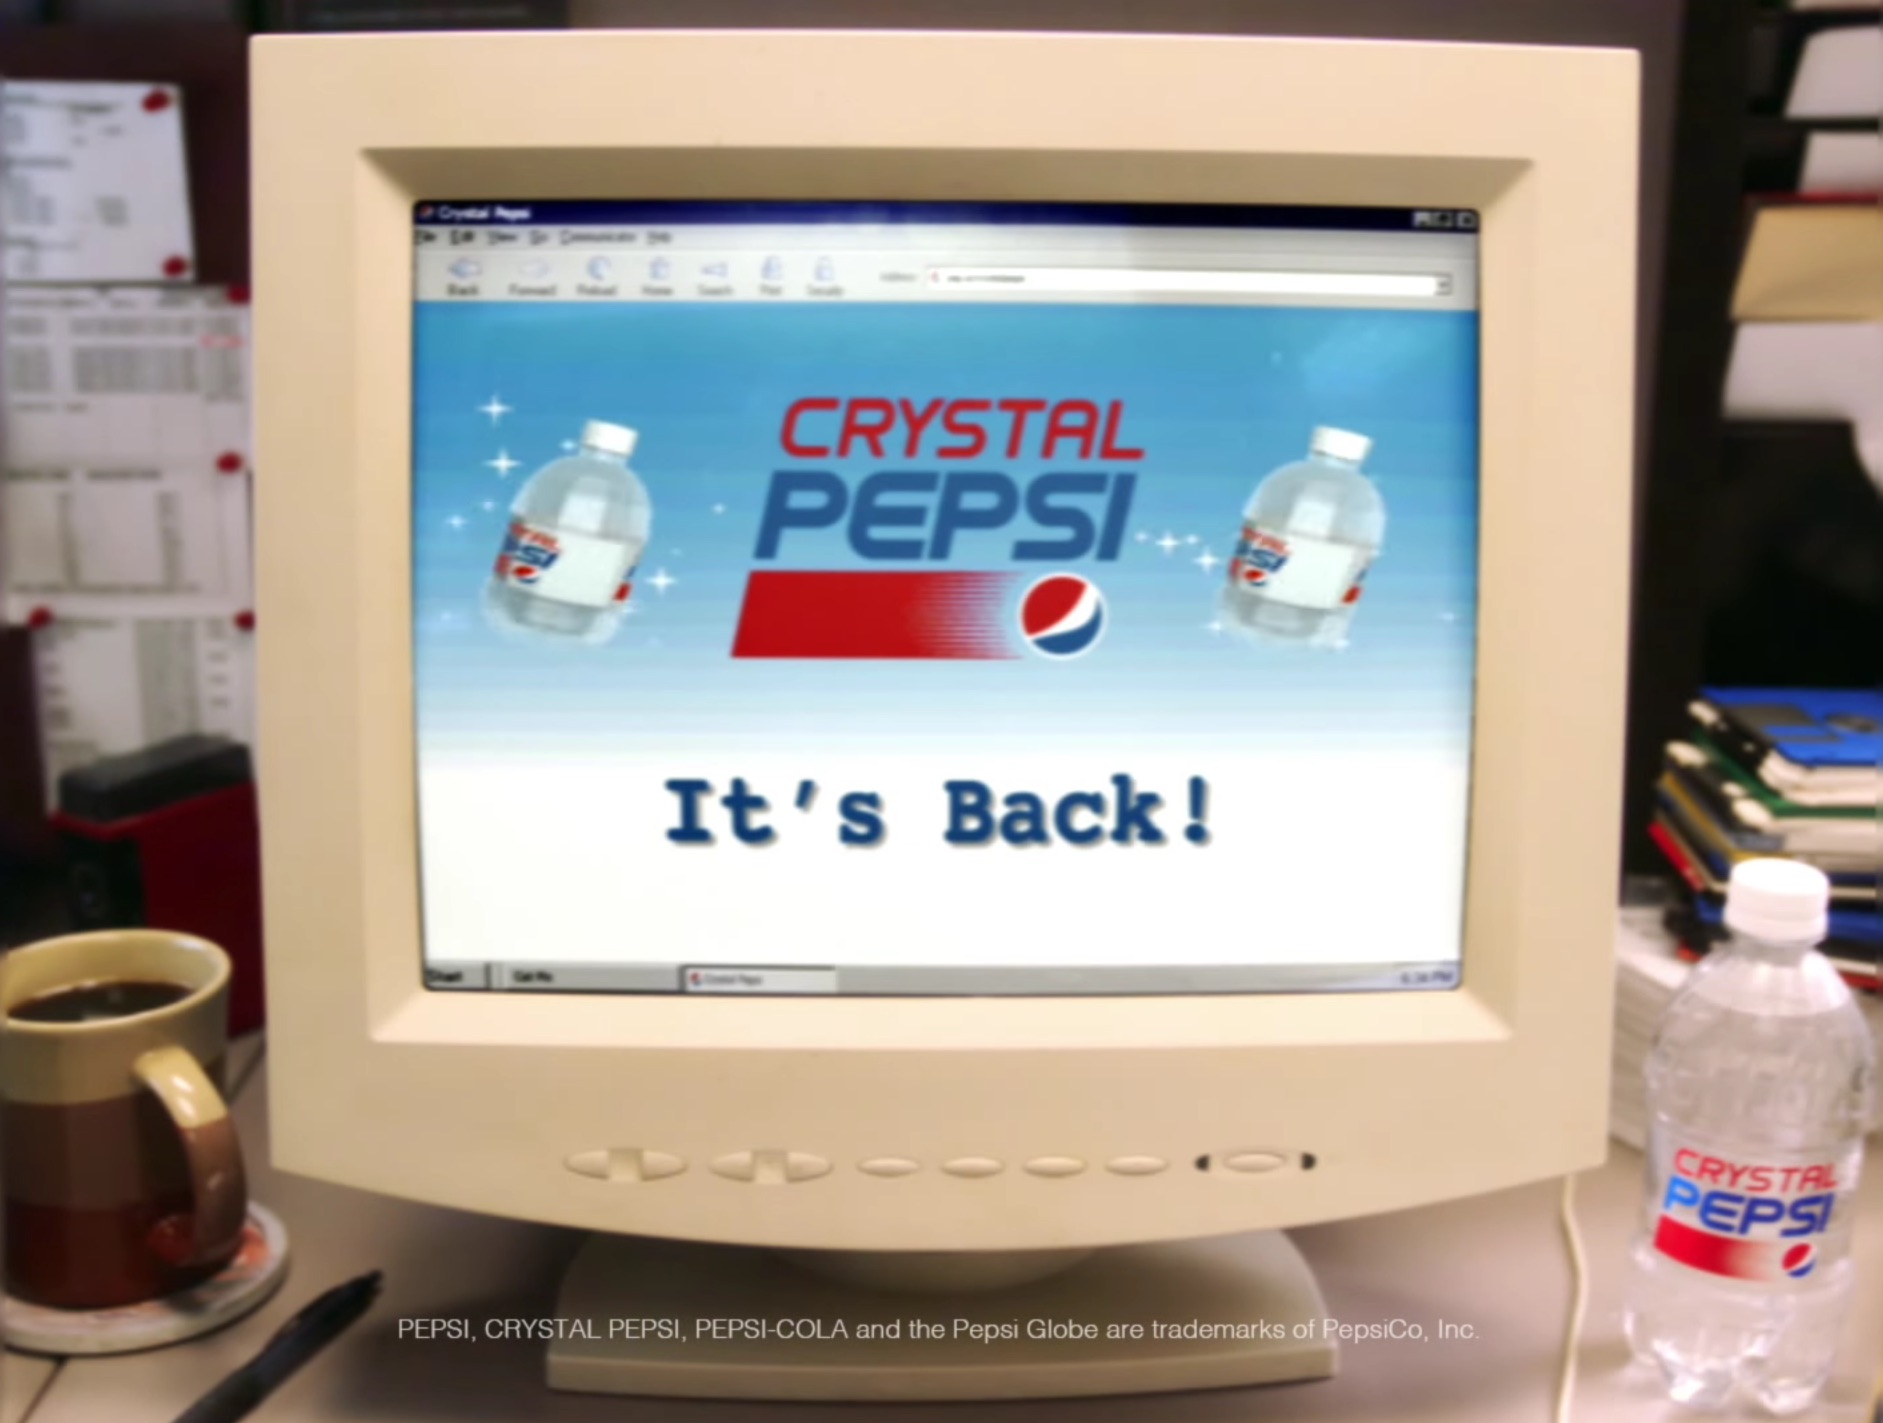 Return Of Crystal Pepsi Confirmed, But You Can't Actually Buy It (Yet)